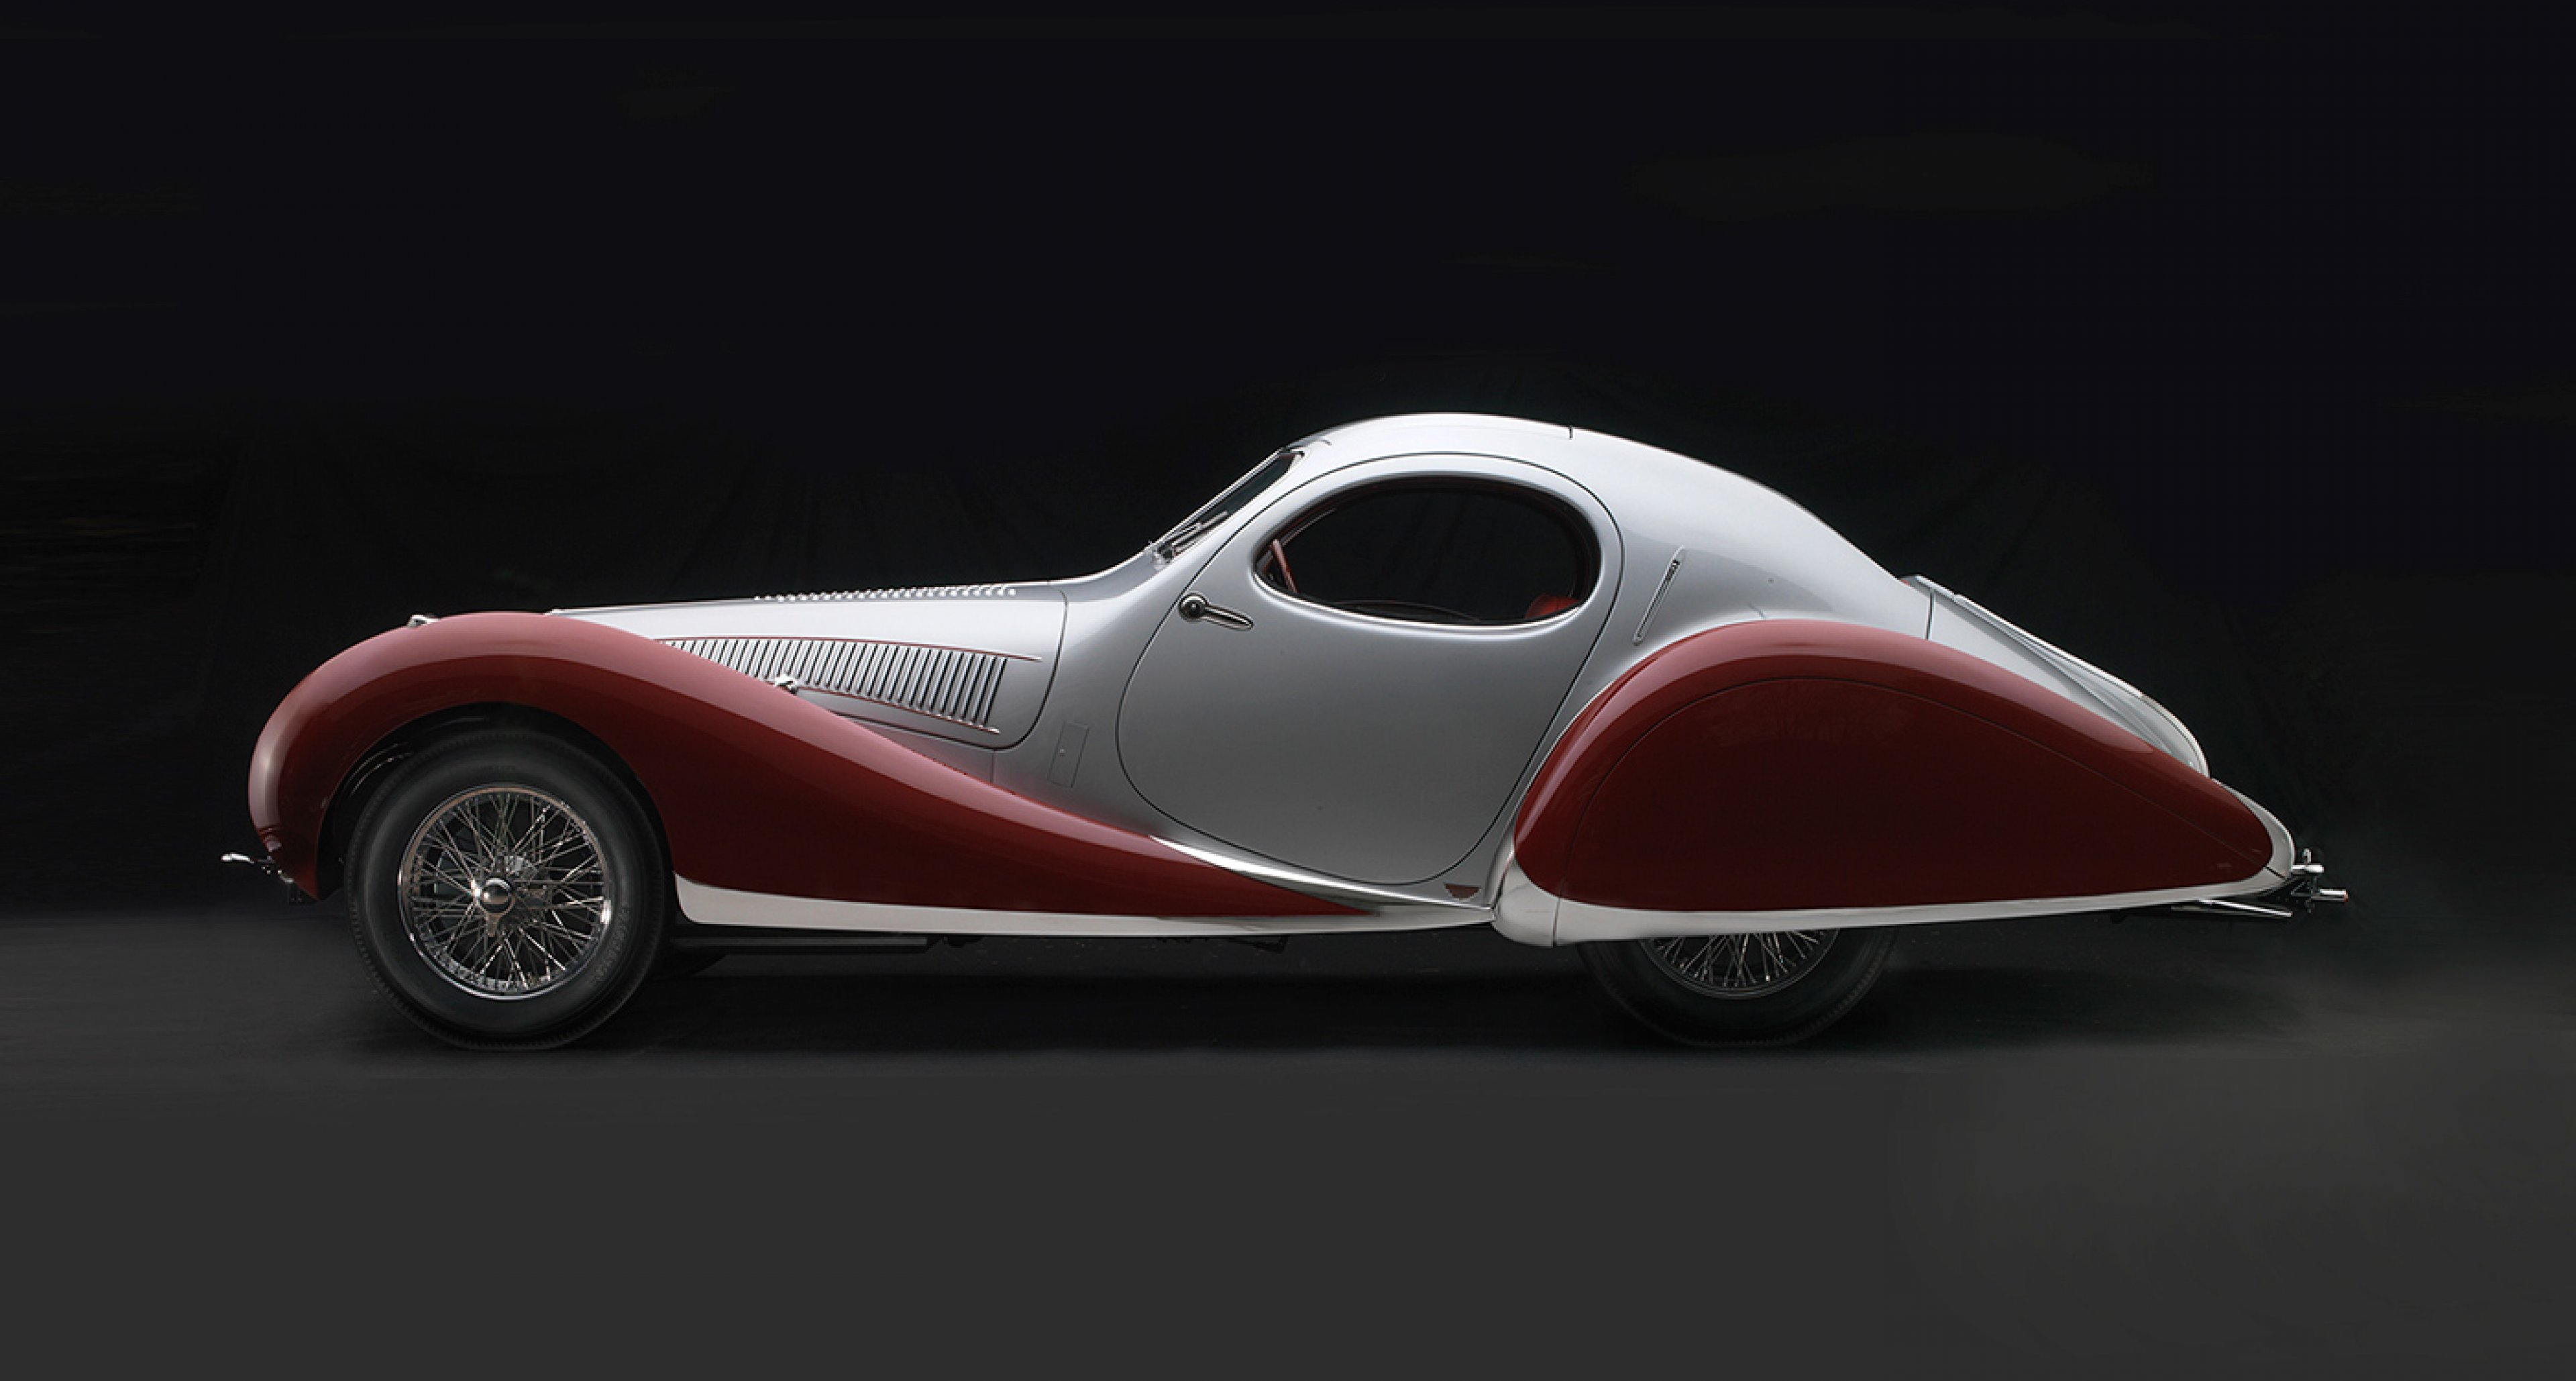 Talbot-Lago T-150C-SS Teardrop Coupe, 1938, Collection of J. W. Marriott, Jr.; Photo © 2016 Peter Harholdt